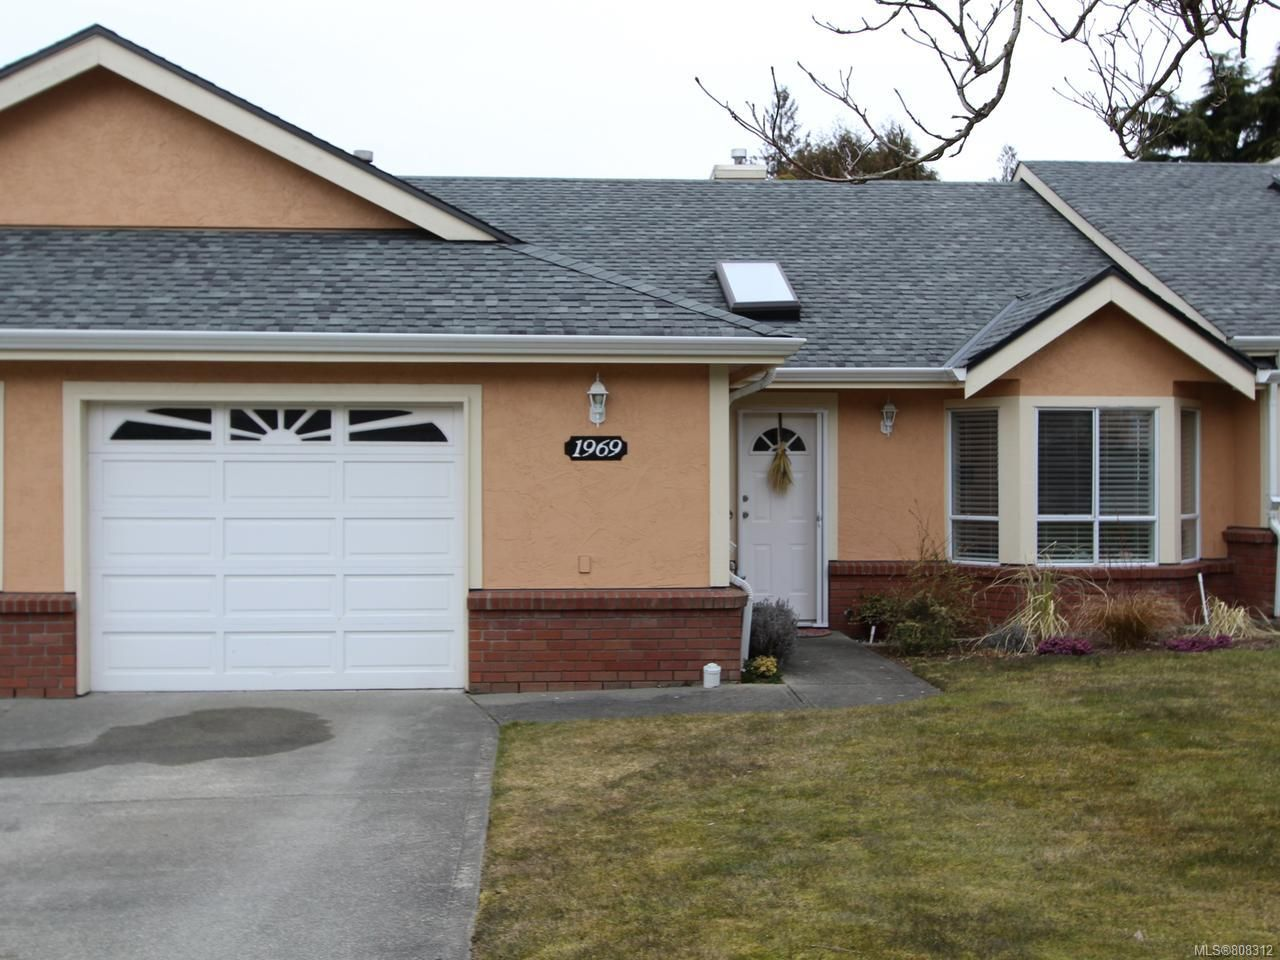 Main Photo: 1969 Bunker Hill Dr in NANAIMO: Na Departure Bay Row/Townhouse for sale (Nanaimo)  : MLS®# 808312